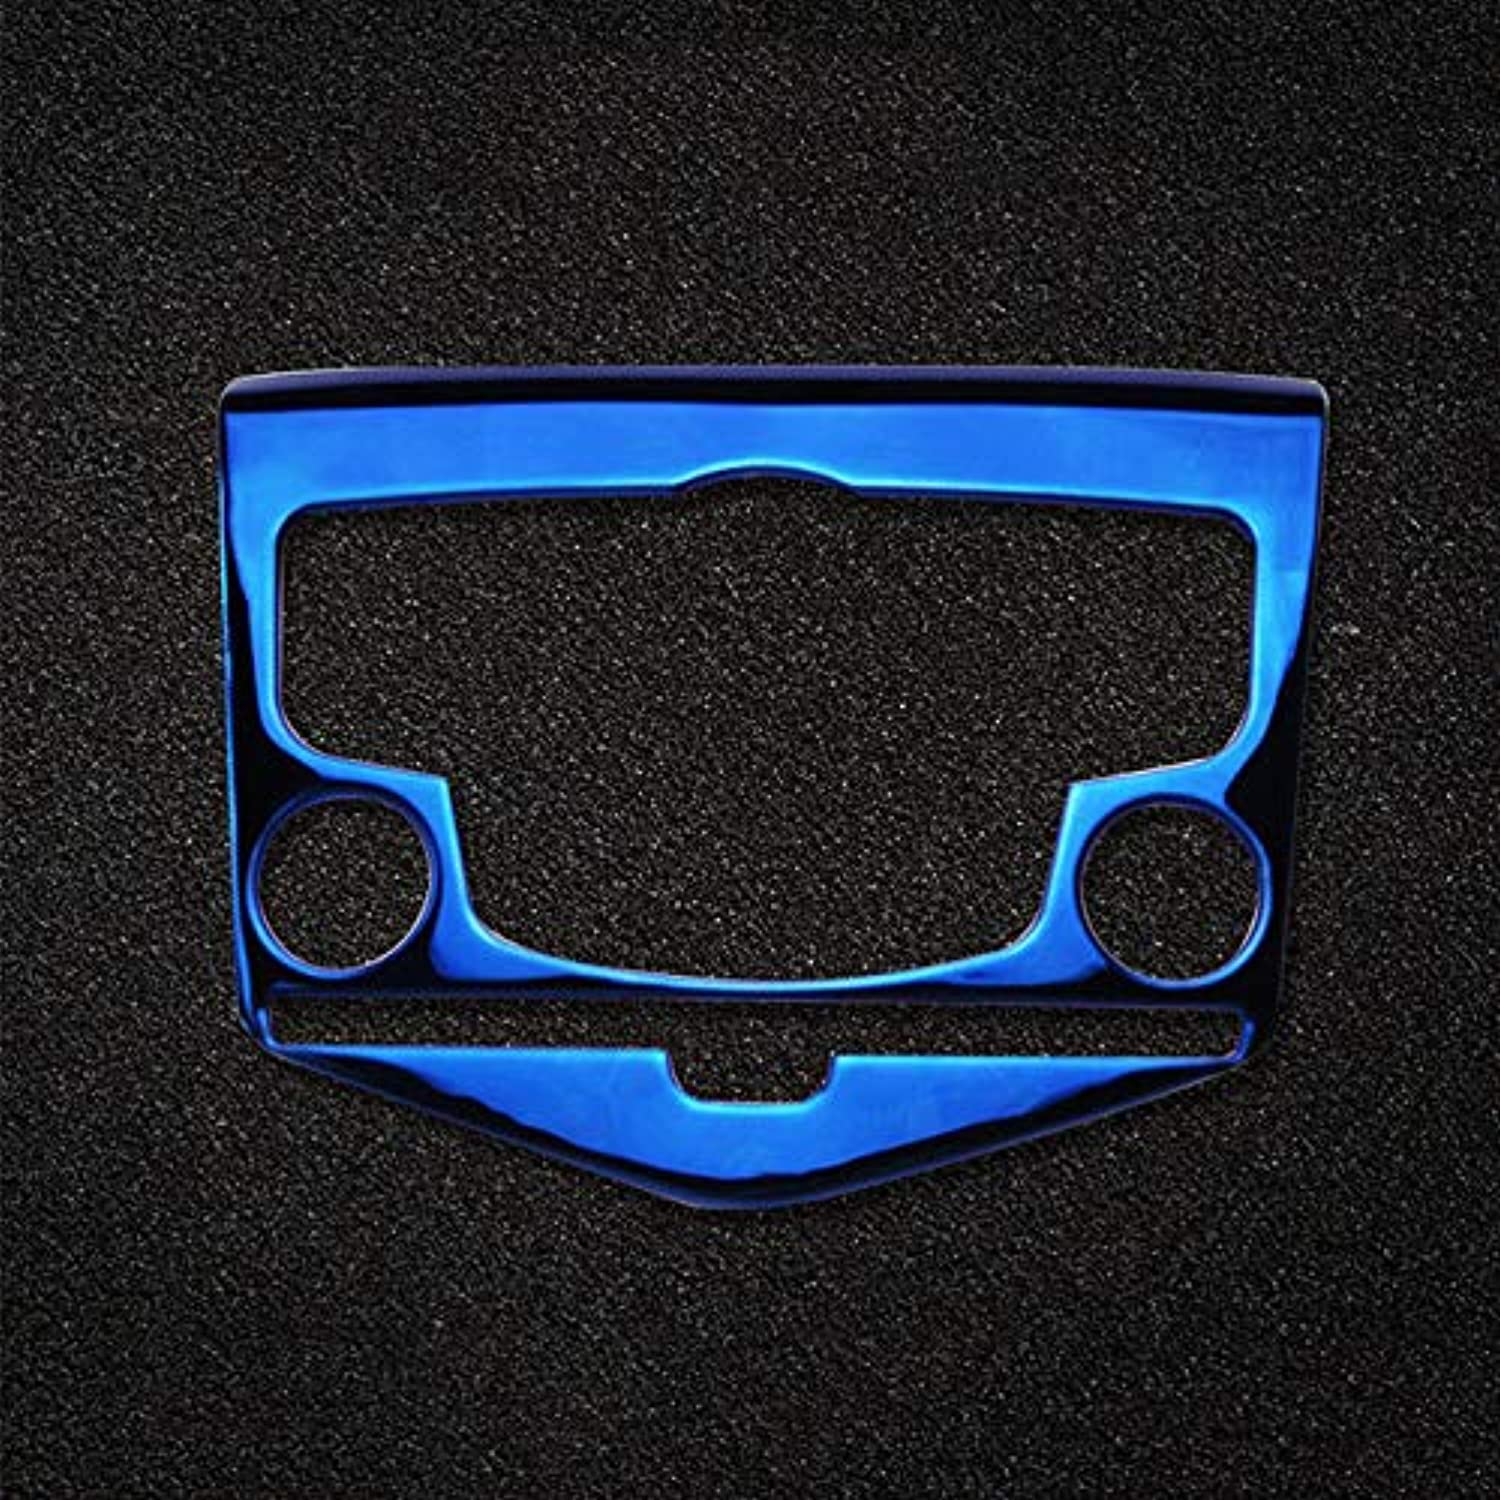 Stainless Air Condition Panel Control Covers Trim for Chevrolet Cruze 20102015  (color Name  bluee)